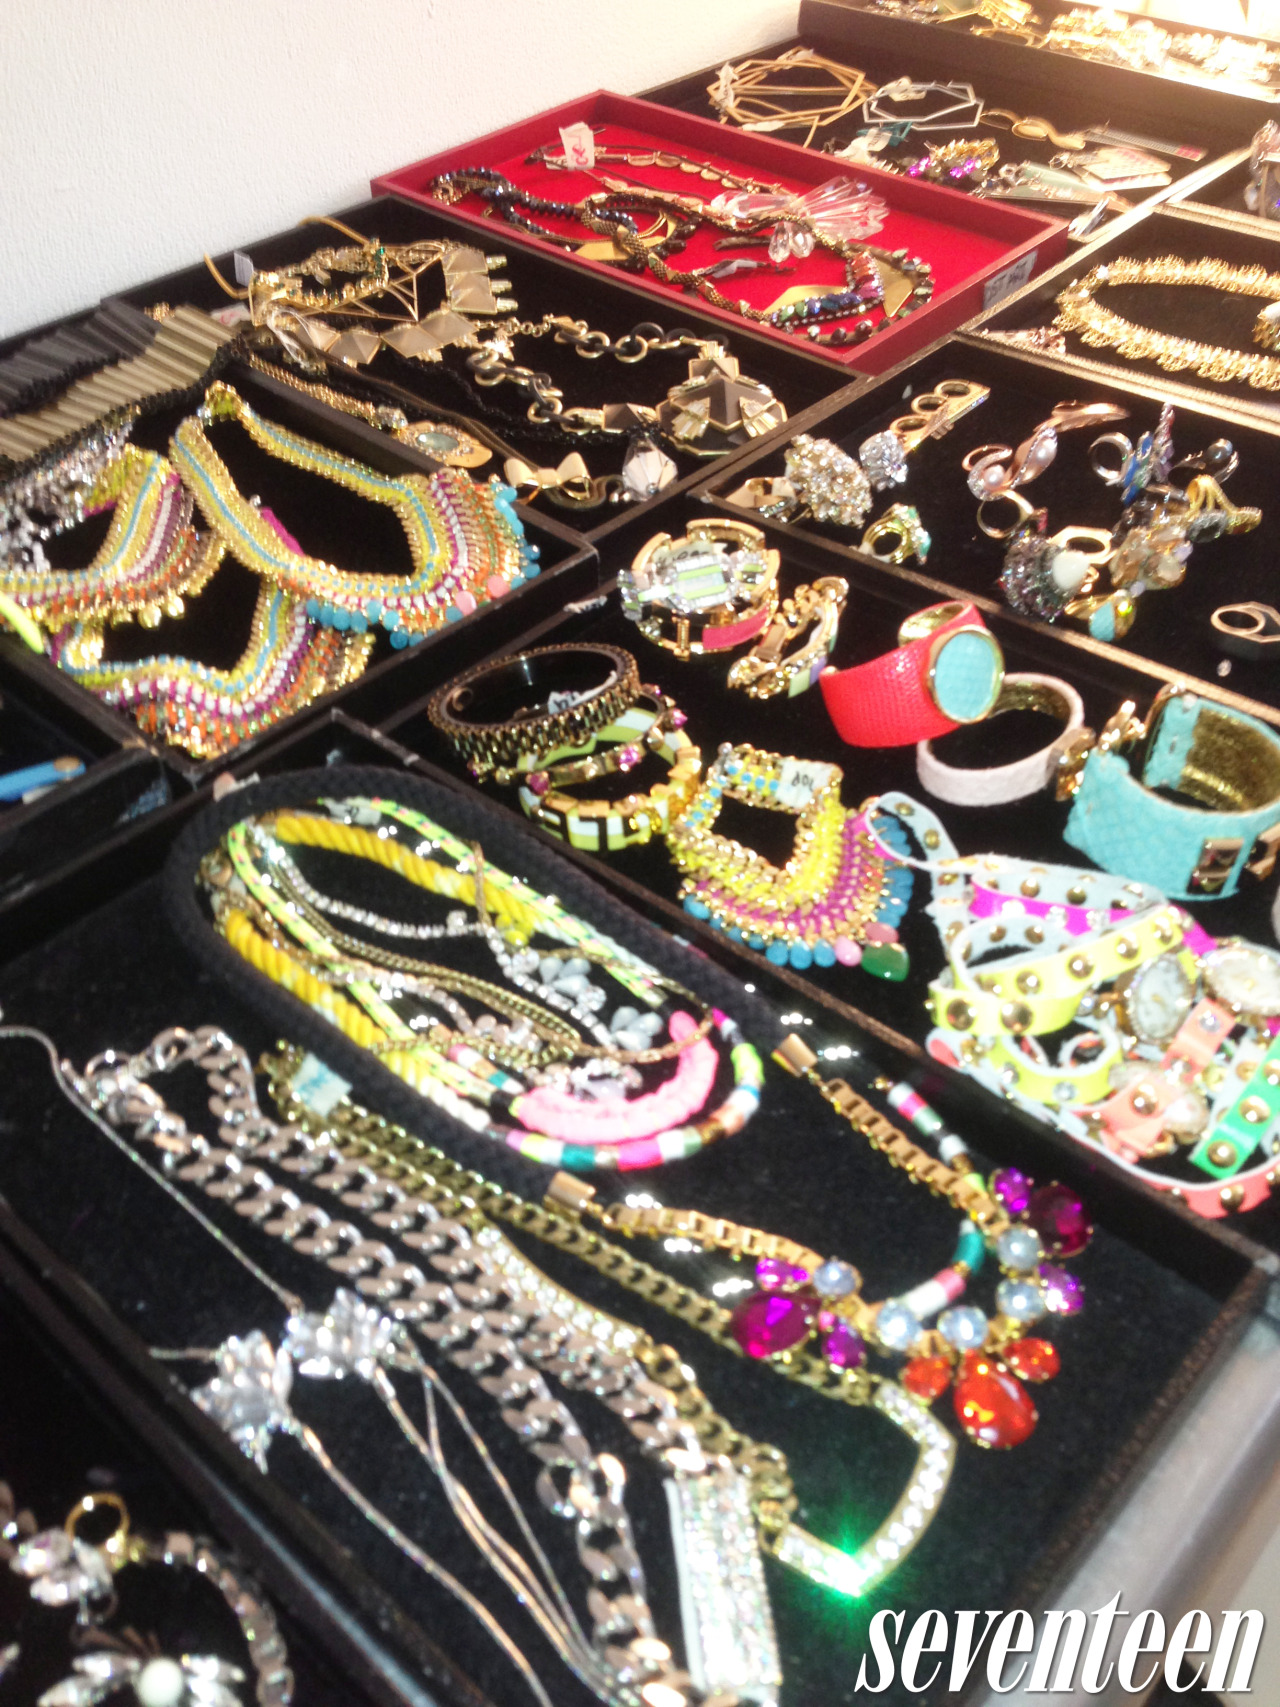 Jewelry at the Carly Rae Jepsen March cover shoot!